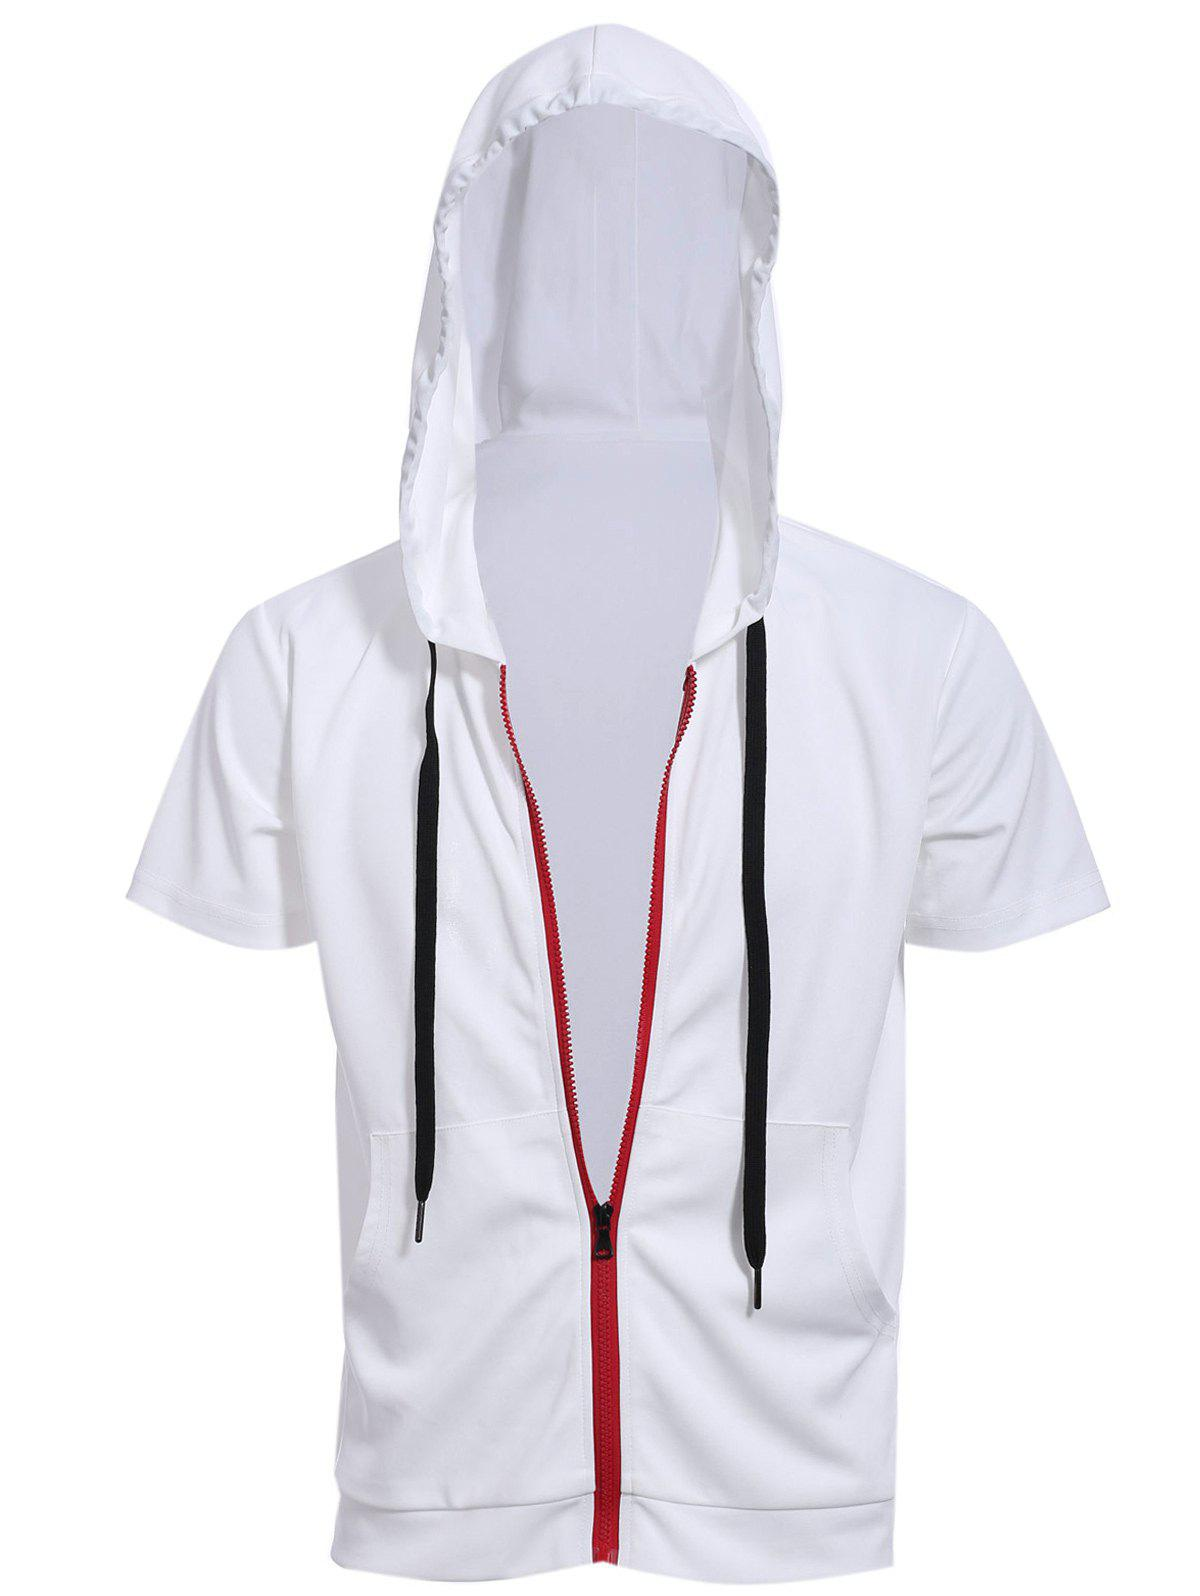 Red Zipper Fly avant Pocket capuche manches courtes hommes s 'Hoodie blanc - Blanc XL